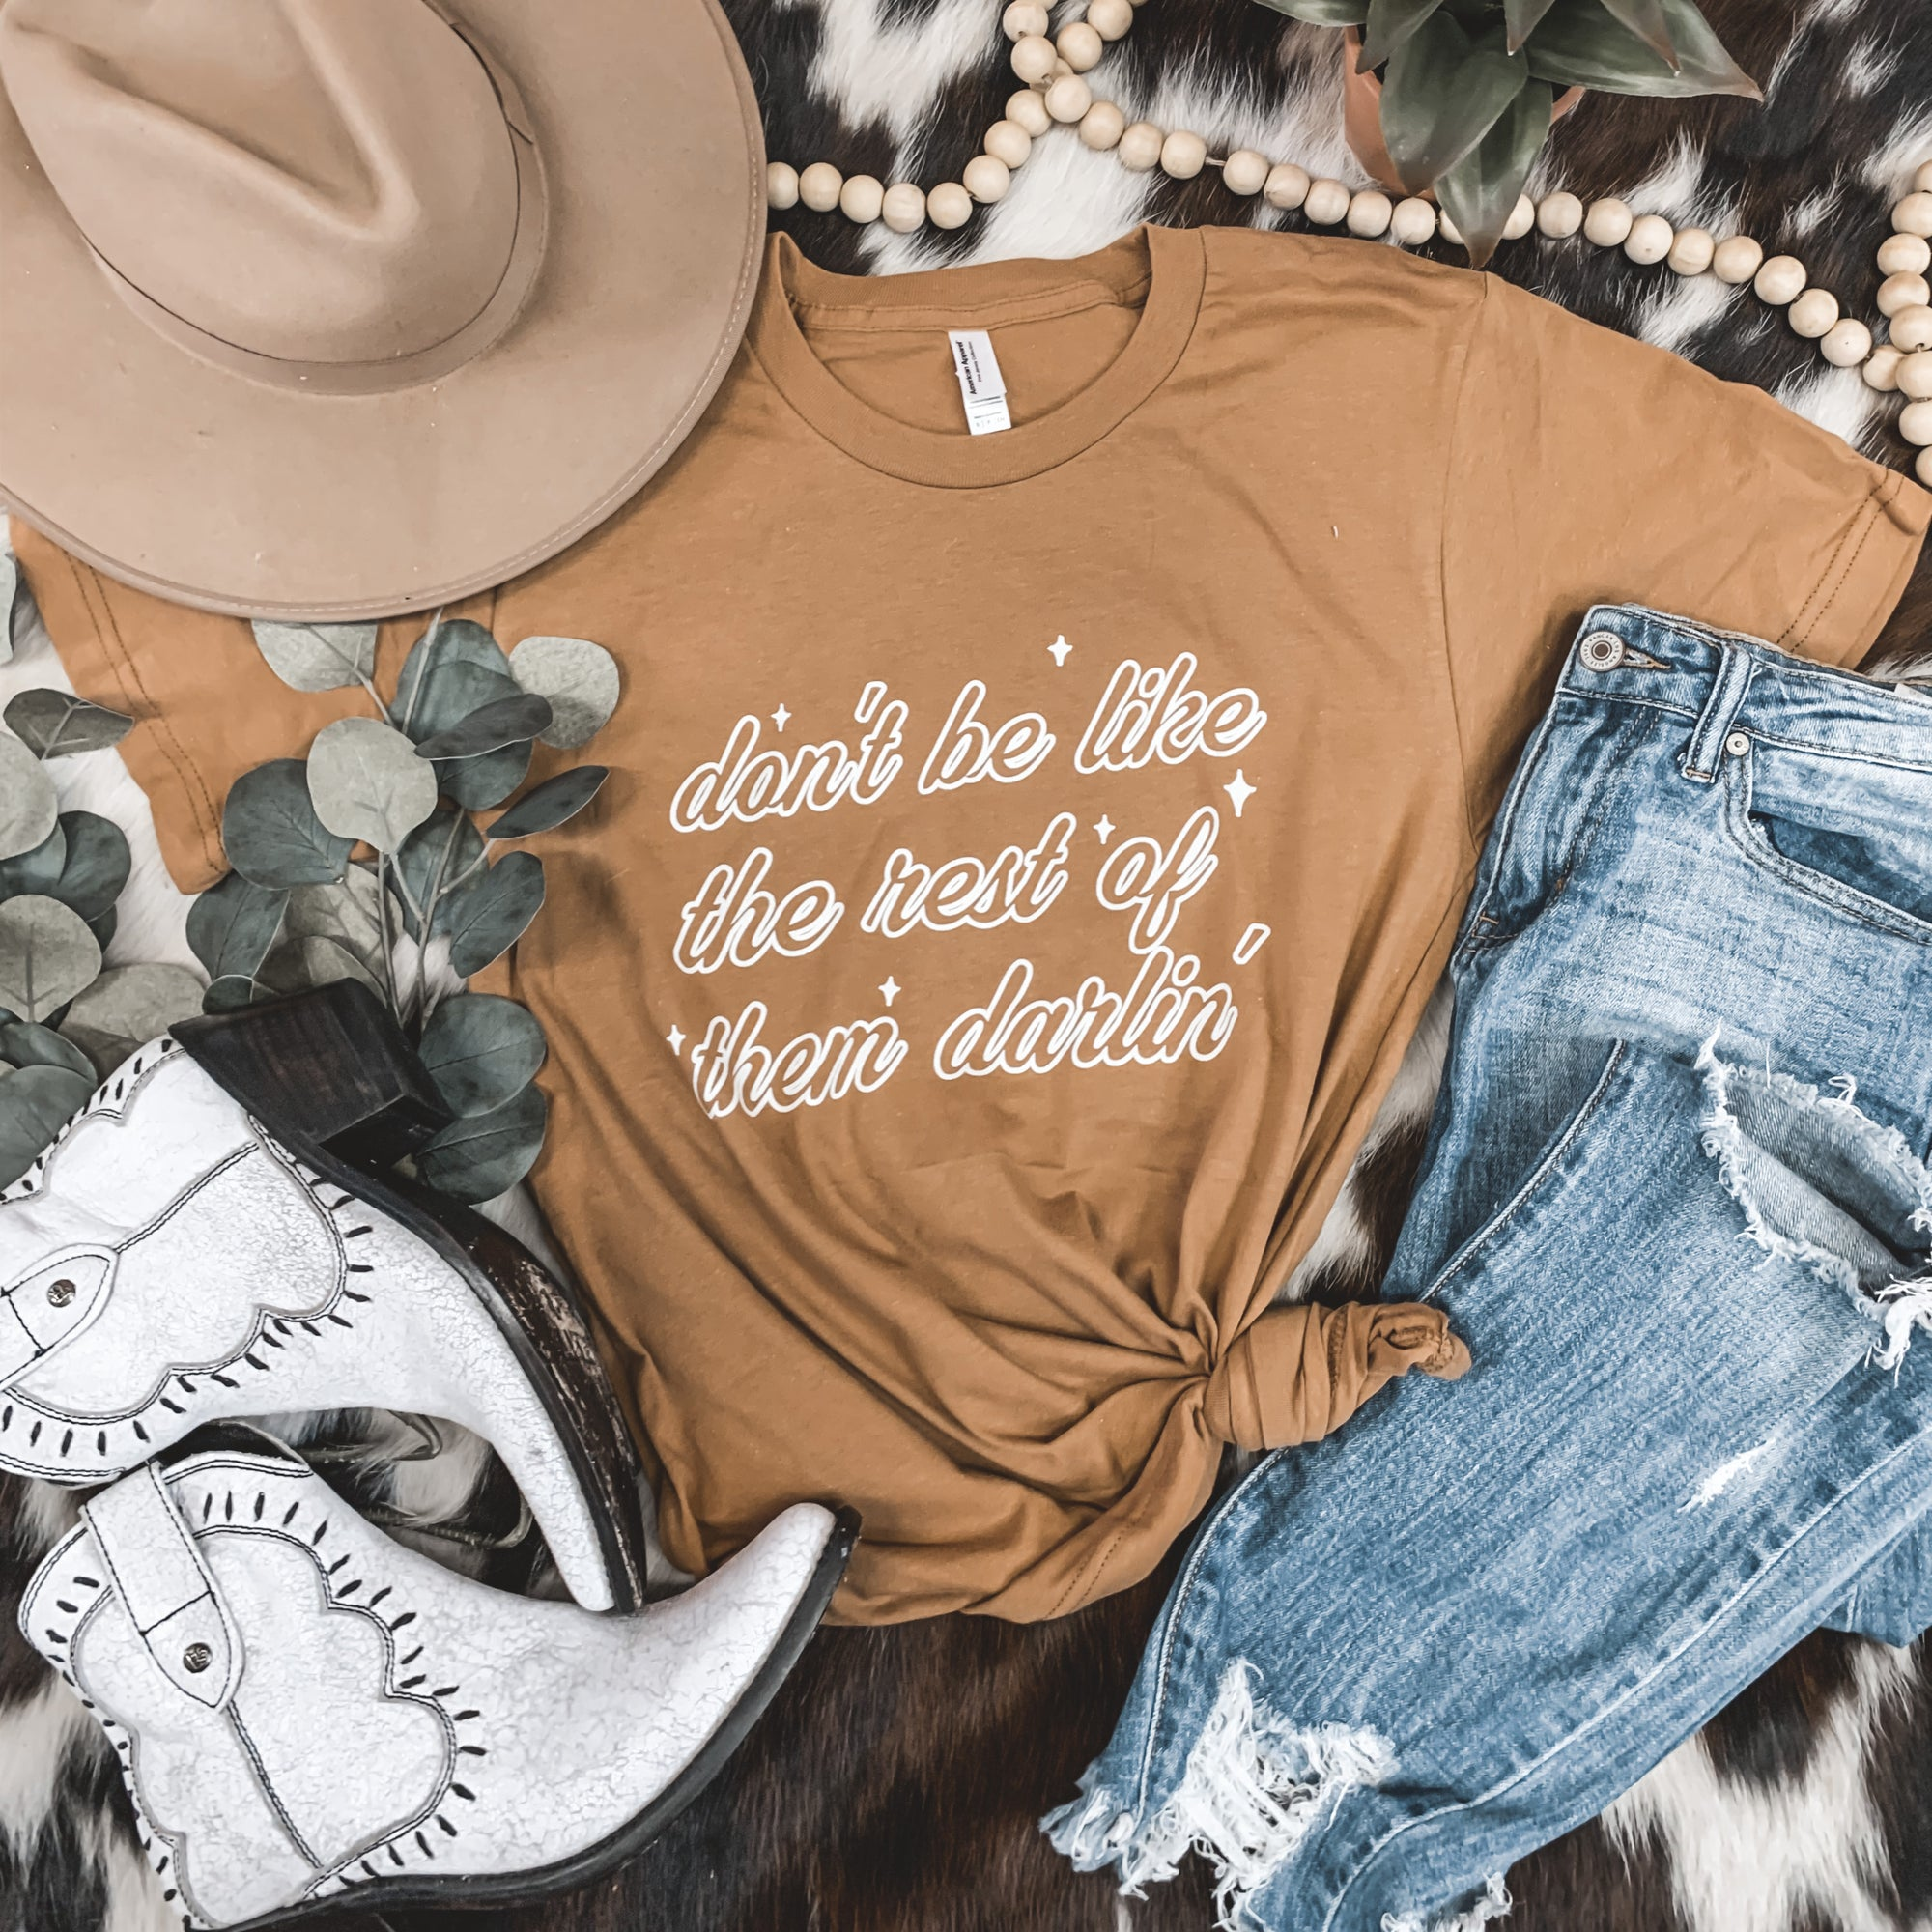 """Don't Be Like The Rest Of Them Darlin'"" Graphic Tee in Camel"